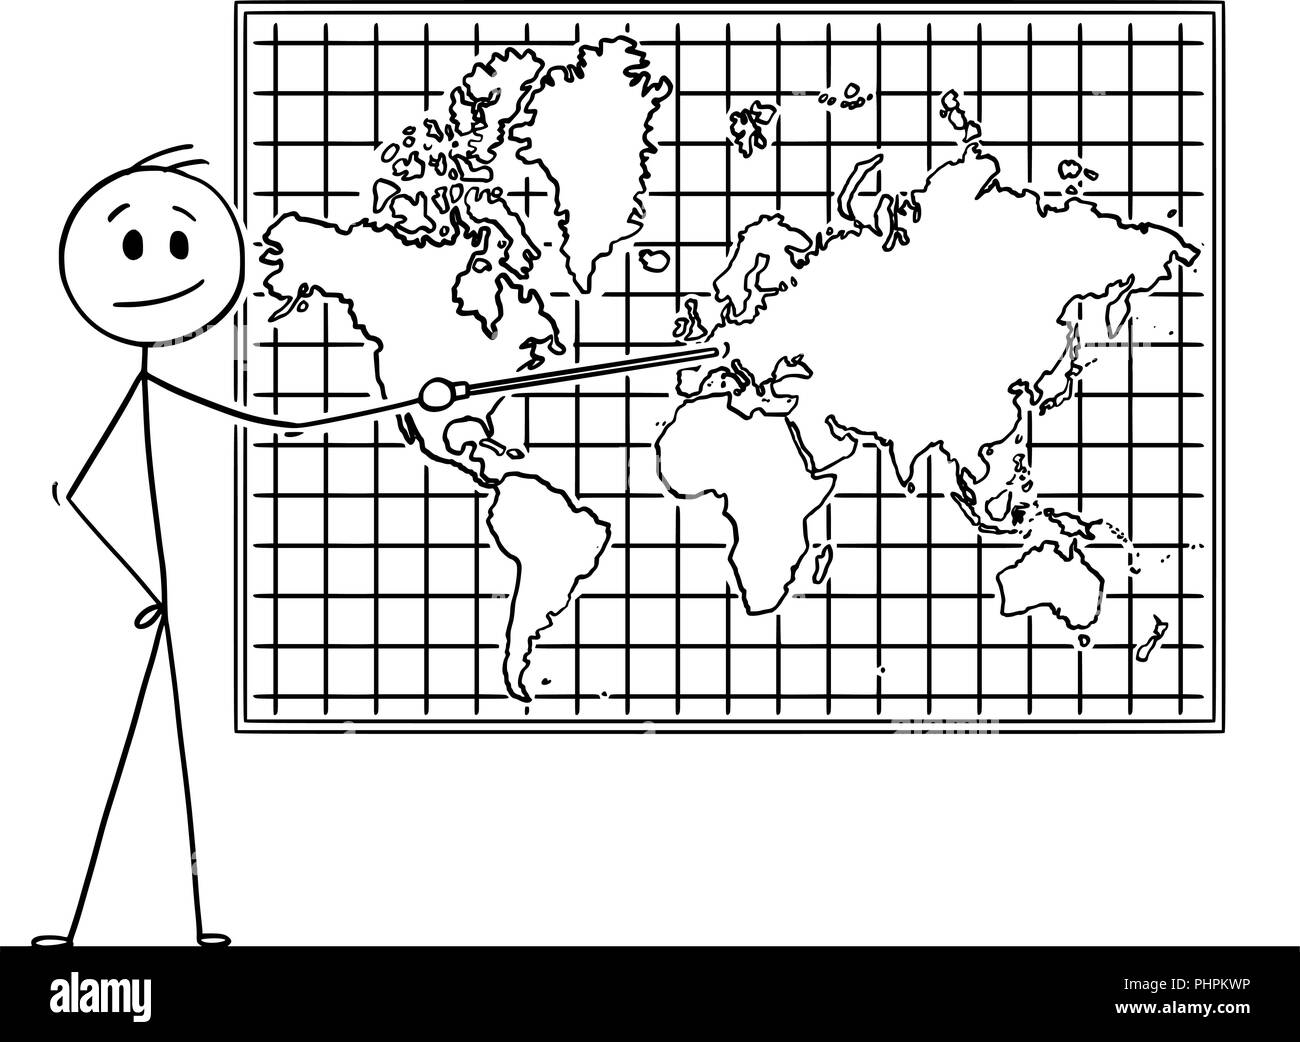 Cartoon of Man Pointing at Europe Continent on Wall World Map Stock Vector